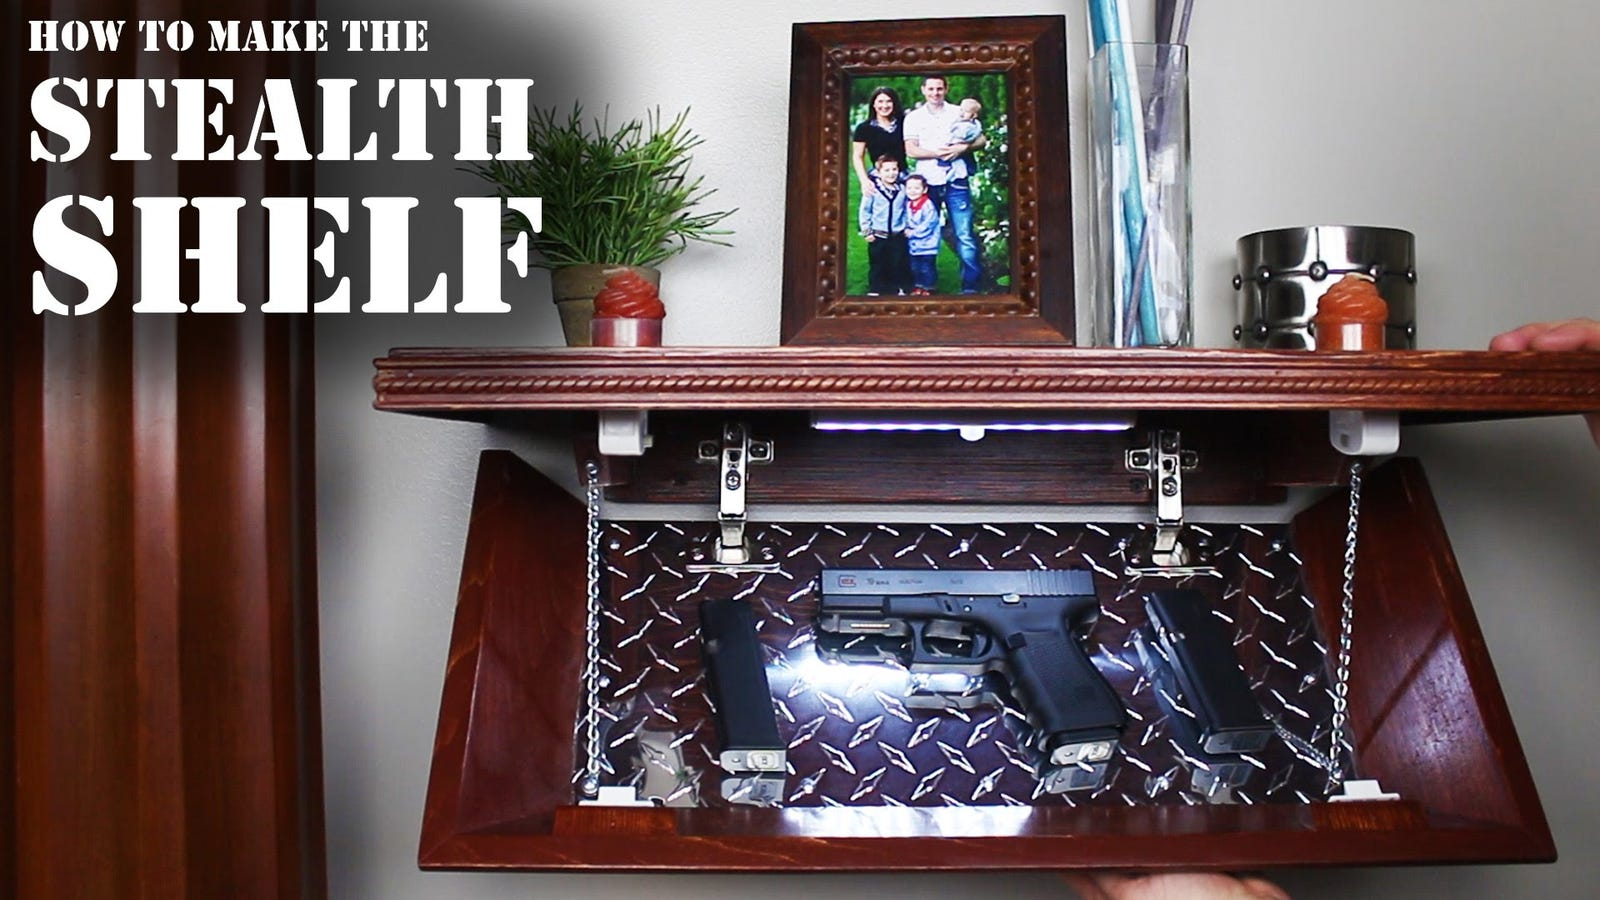 Hide your valuables in this diy secret compartment shelf for Diy hidden compartment